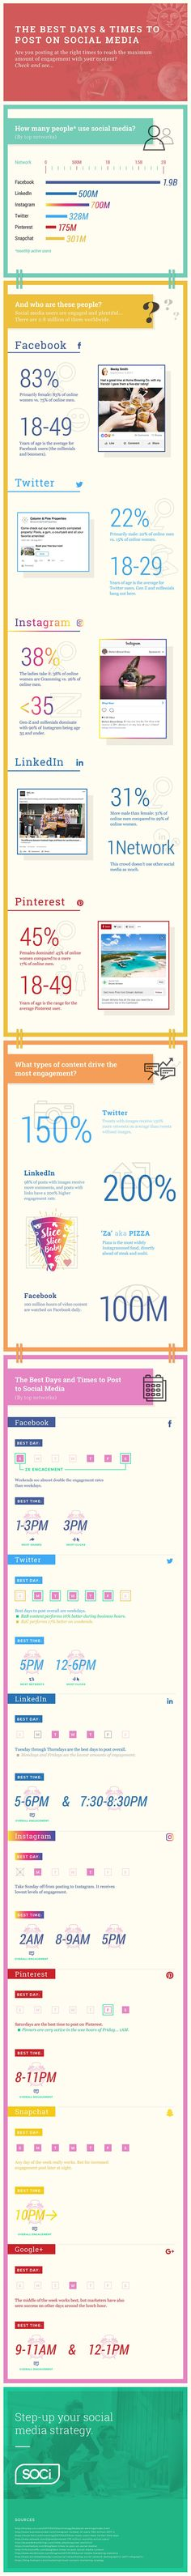 Educational infographic & Data Infographic : The Best Days and Times to Post on Social Media. Image Description Infographic : The Best Days and Times to Social Media Marketing Business, Internet Marketing, Online Marketing, Digital Marketing, Marketing Ideas, Content Marketing, Best Social Media Sites, Social Networks, Social Media Measurement